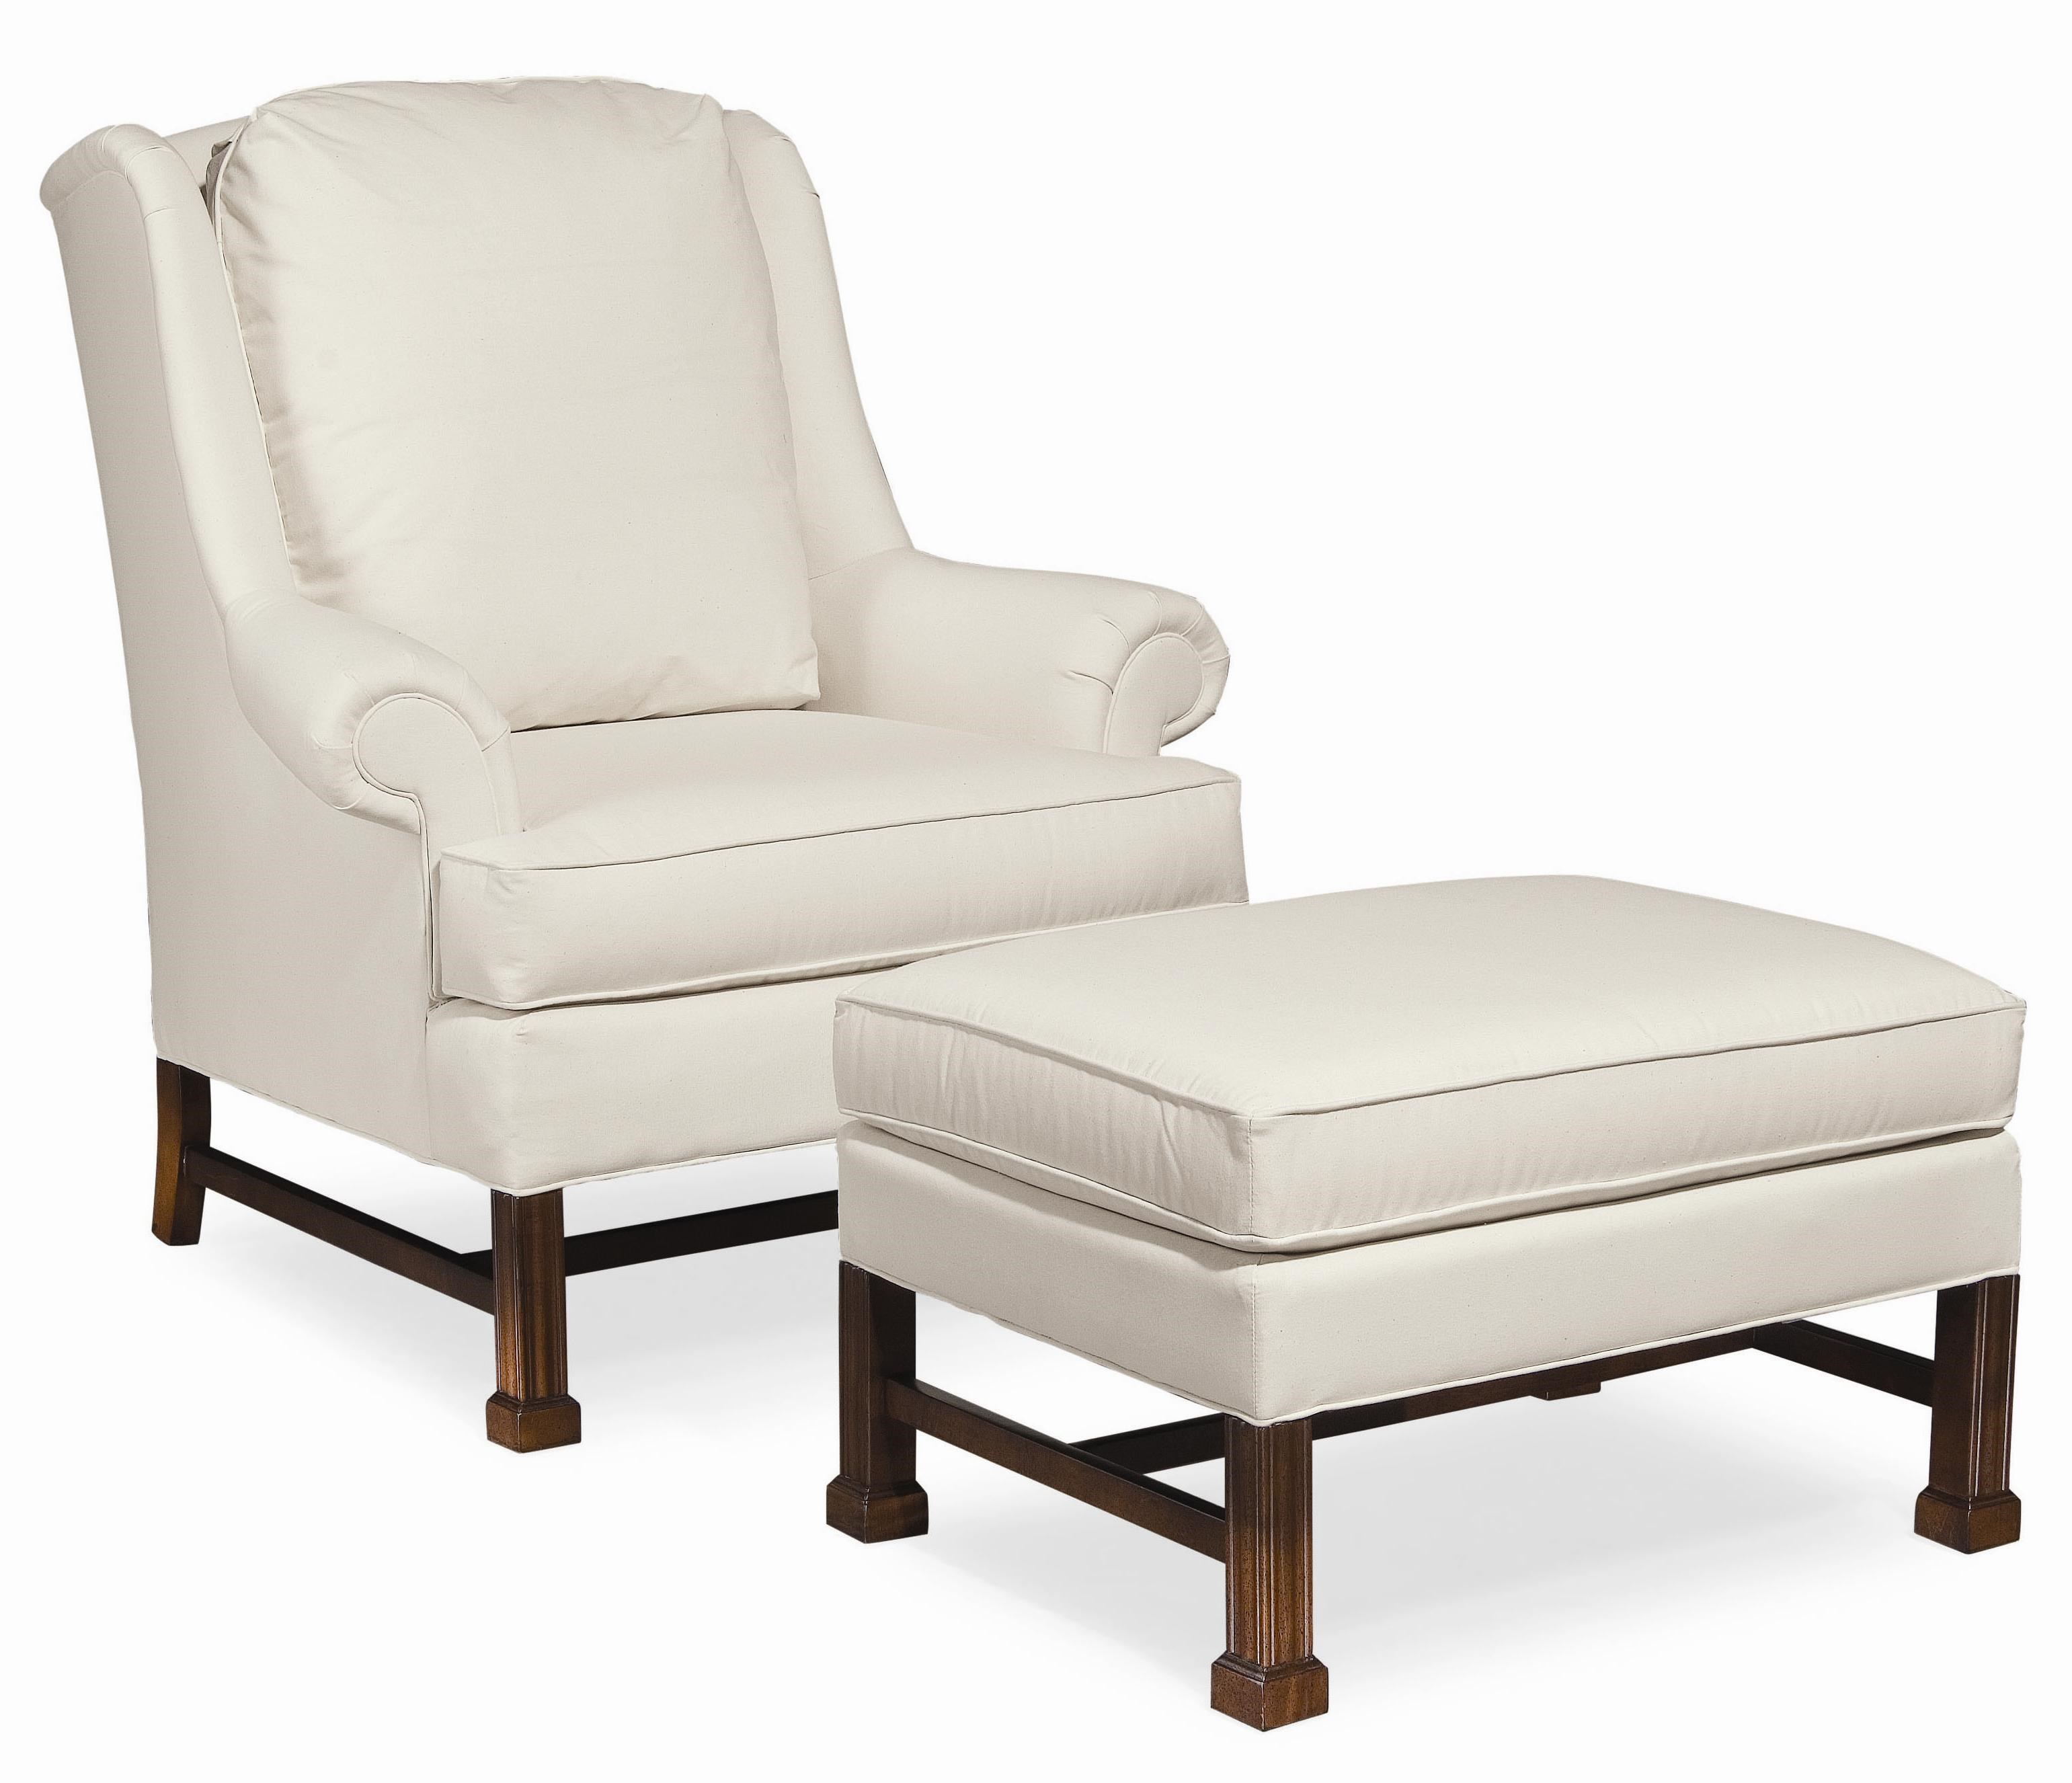 Upholstered Chair And Ottoman thomasville® upholstered chairs and ottomans jamison upholstered